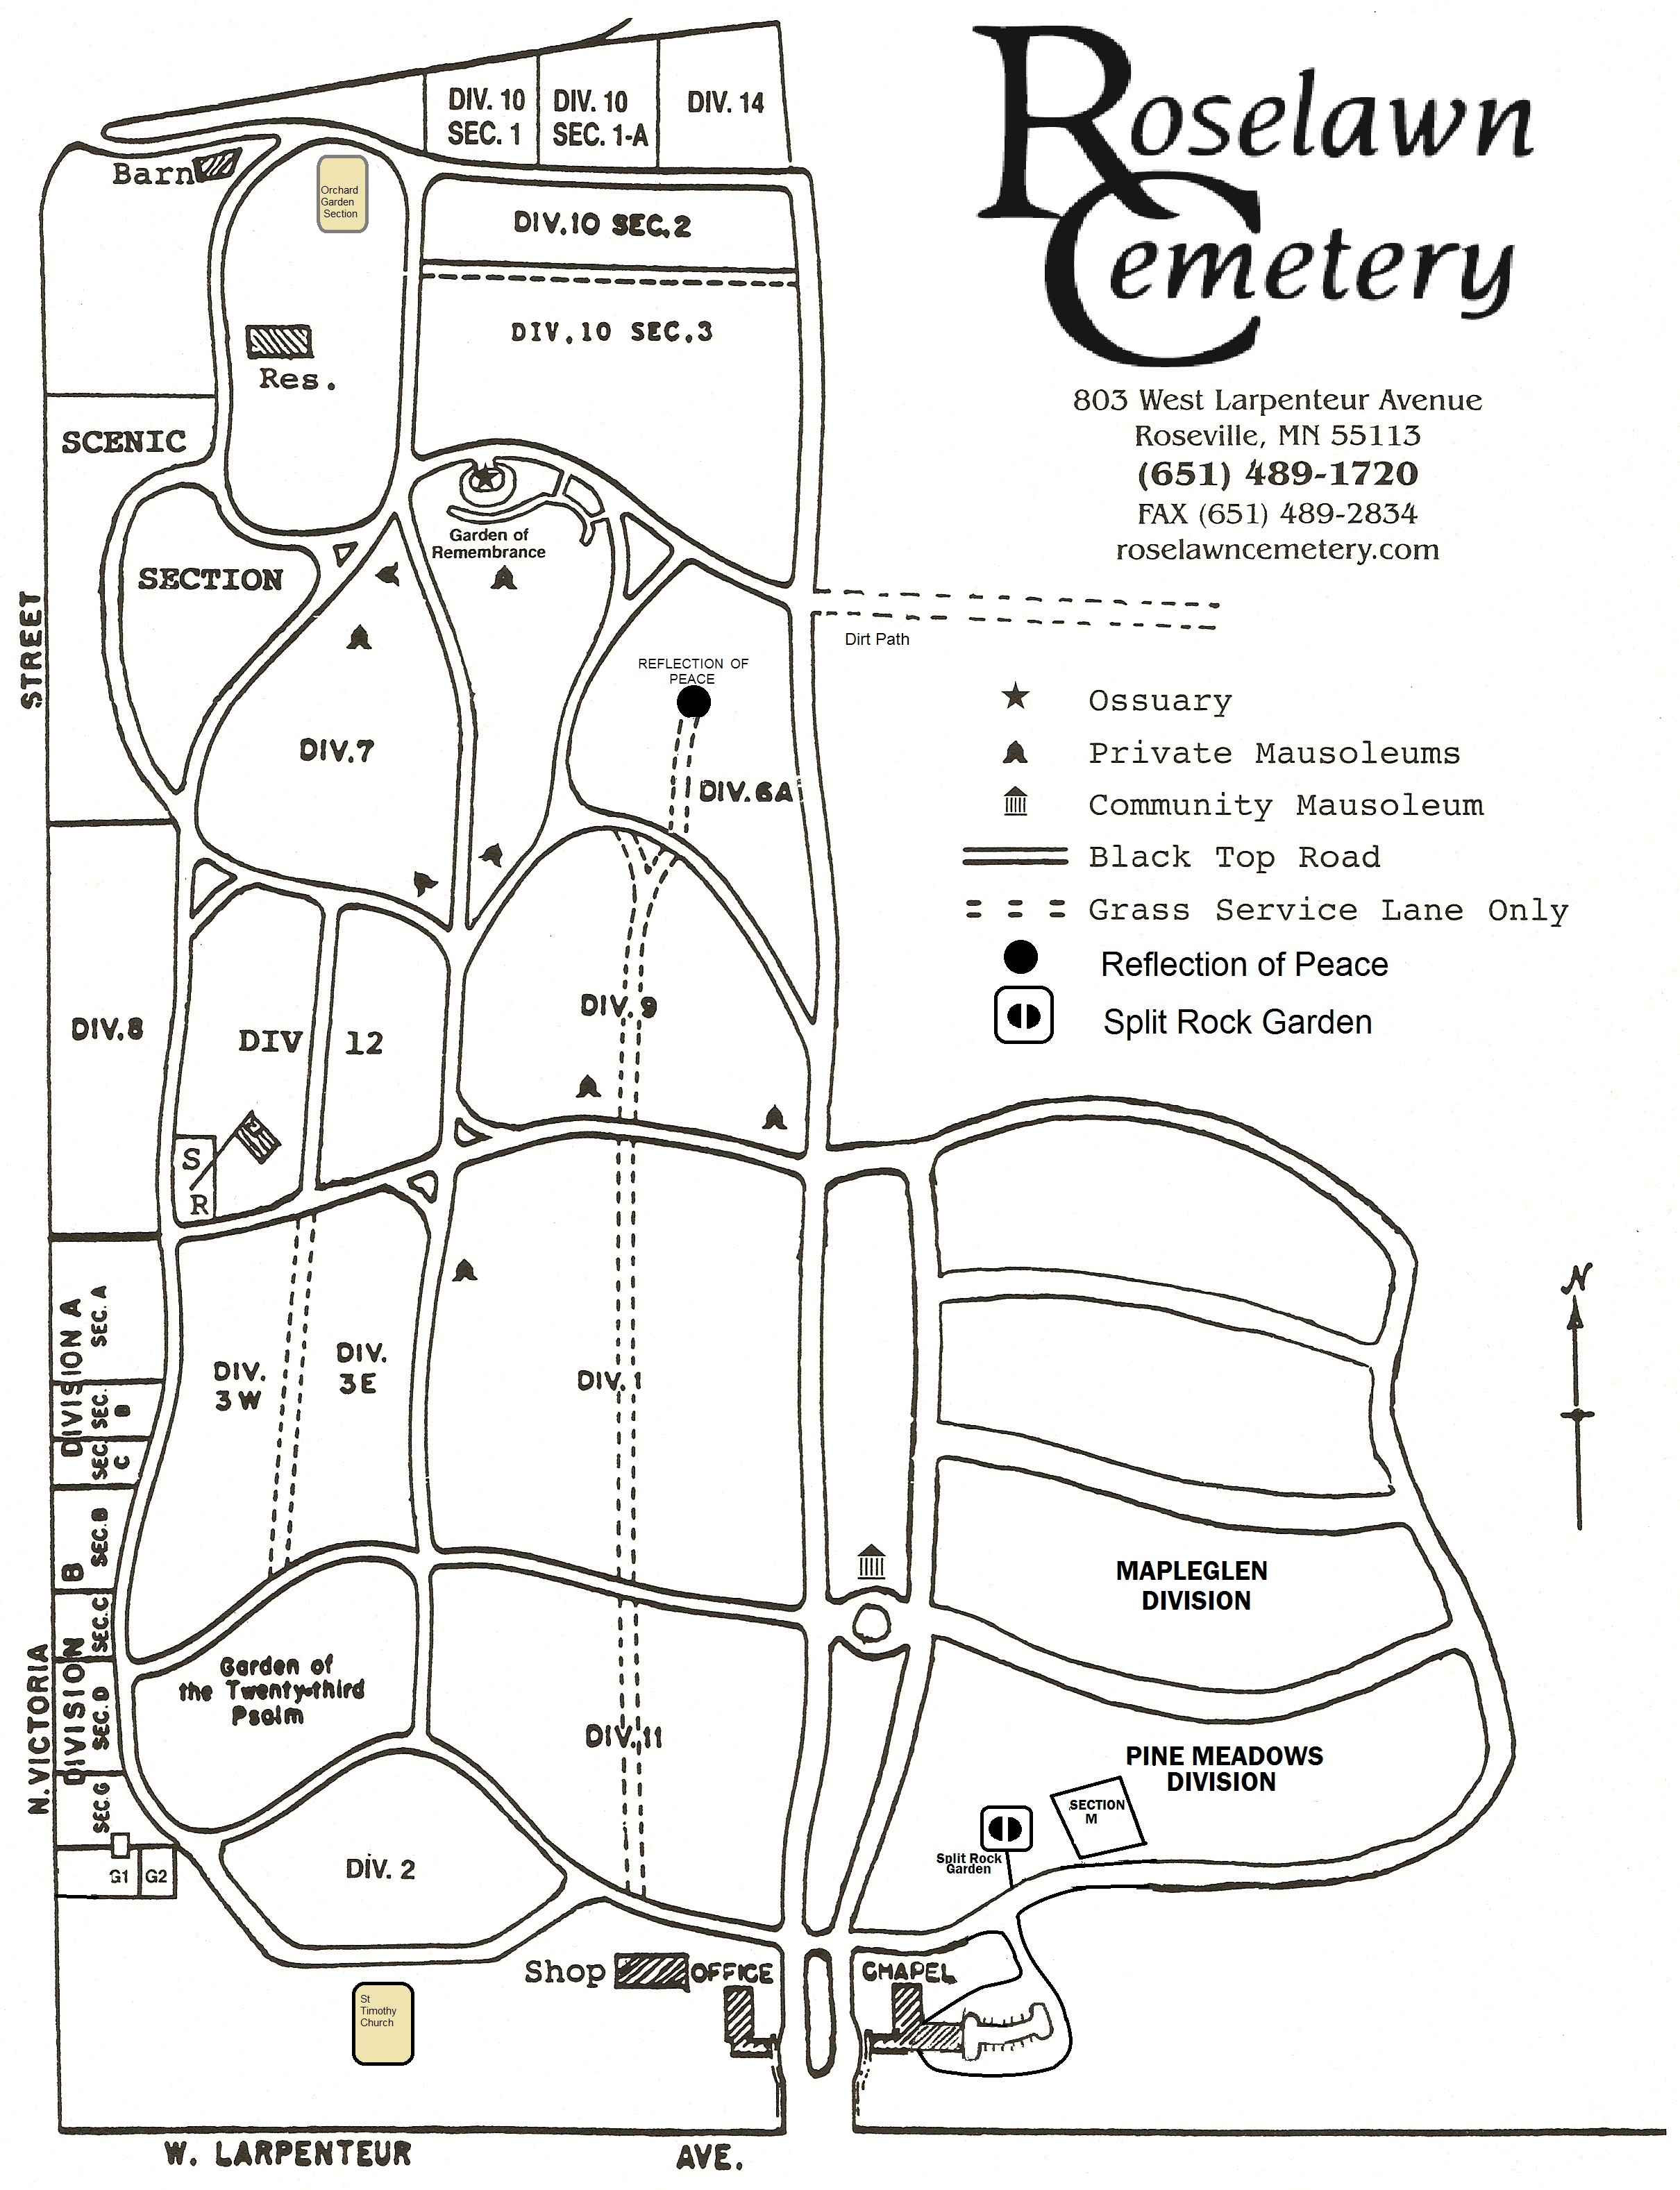 Burial Maps Amp Lot Ownership Locations